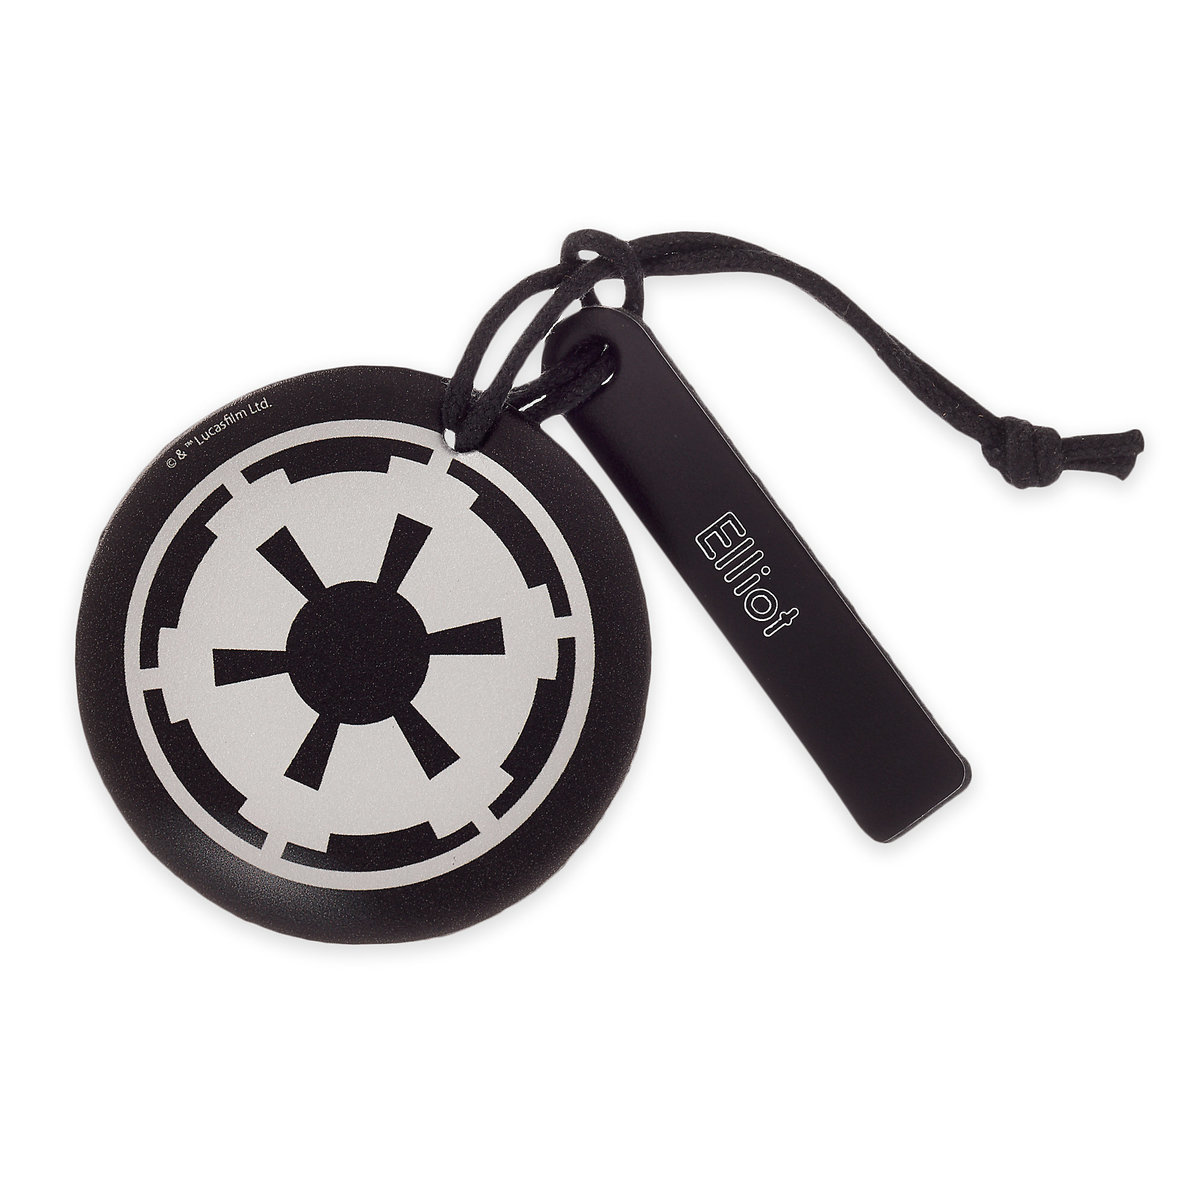 Disney Personalizable Leather Bag Tag - Star Wars Imperial Symbol